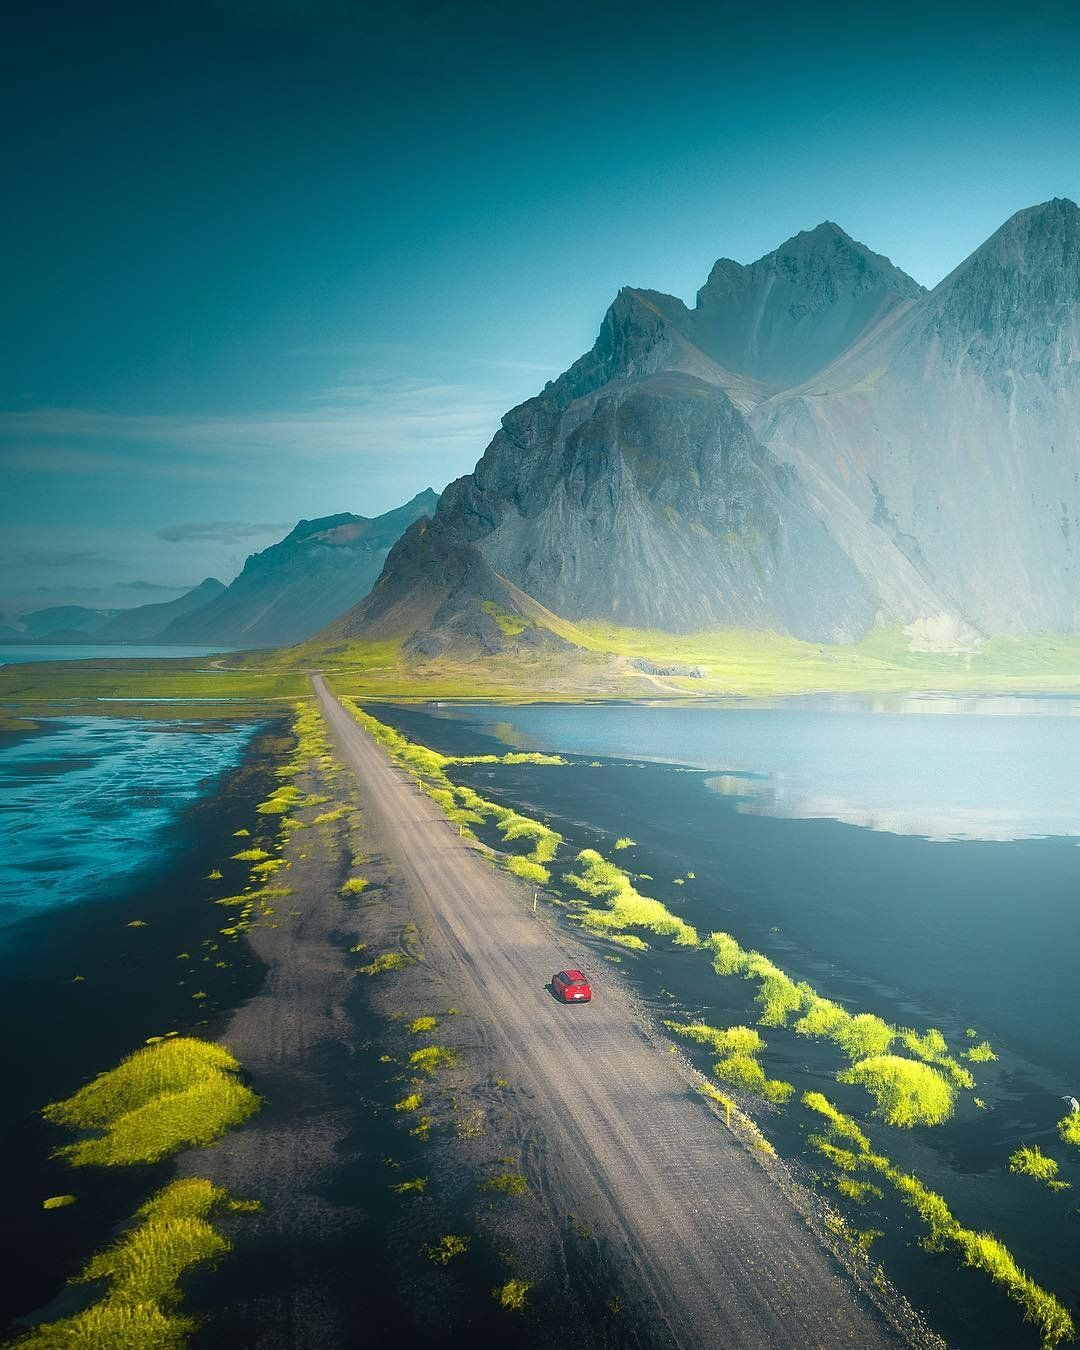 On the roads of Iceland (credit to cumacevikphoto)